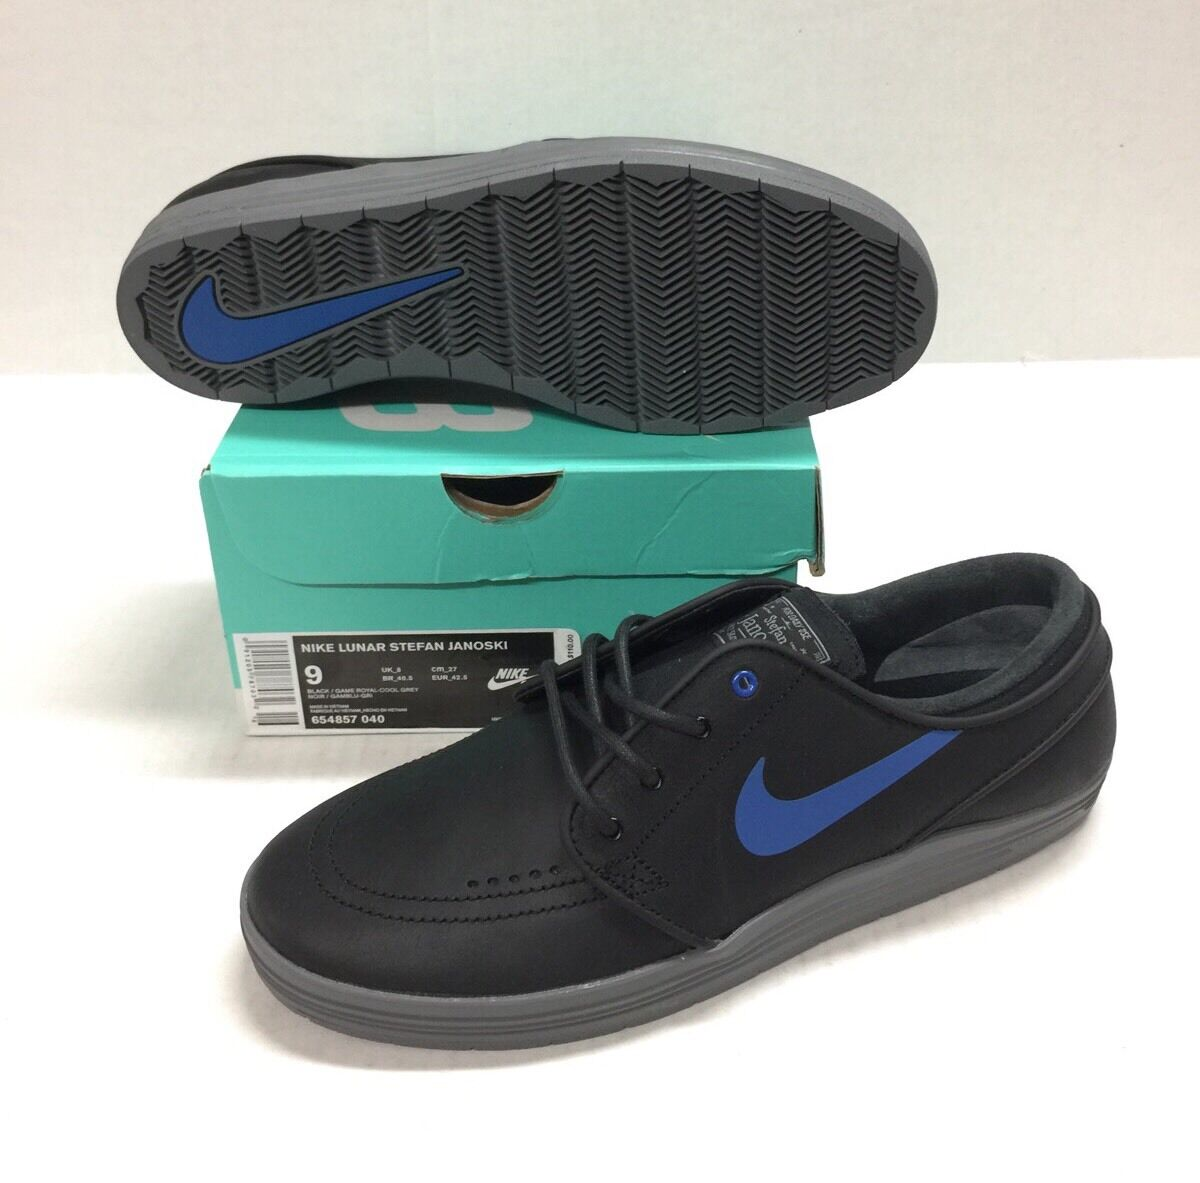 NIKE SB LUNAR STEFAN ROYAL-COOL JANOSKI BLACK / GAME ROYAL-COOL STEFAN GREY  NEW 190720